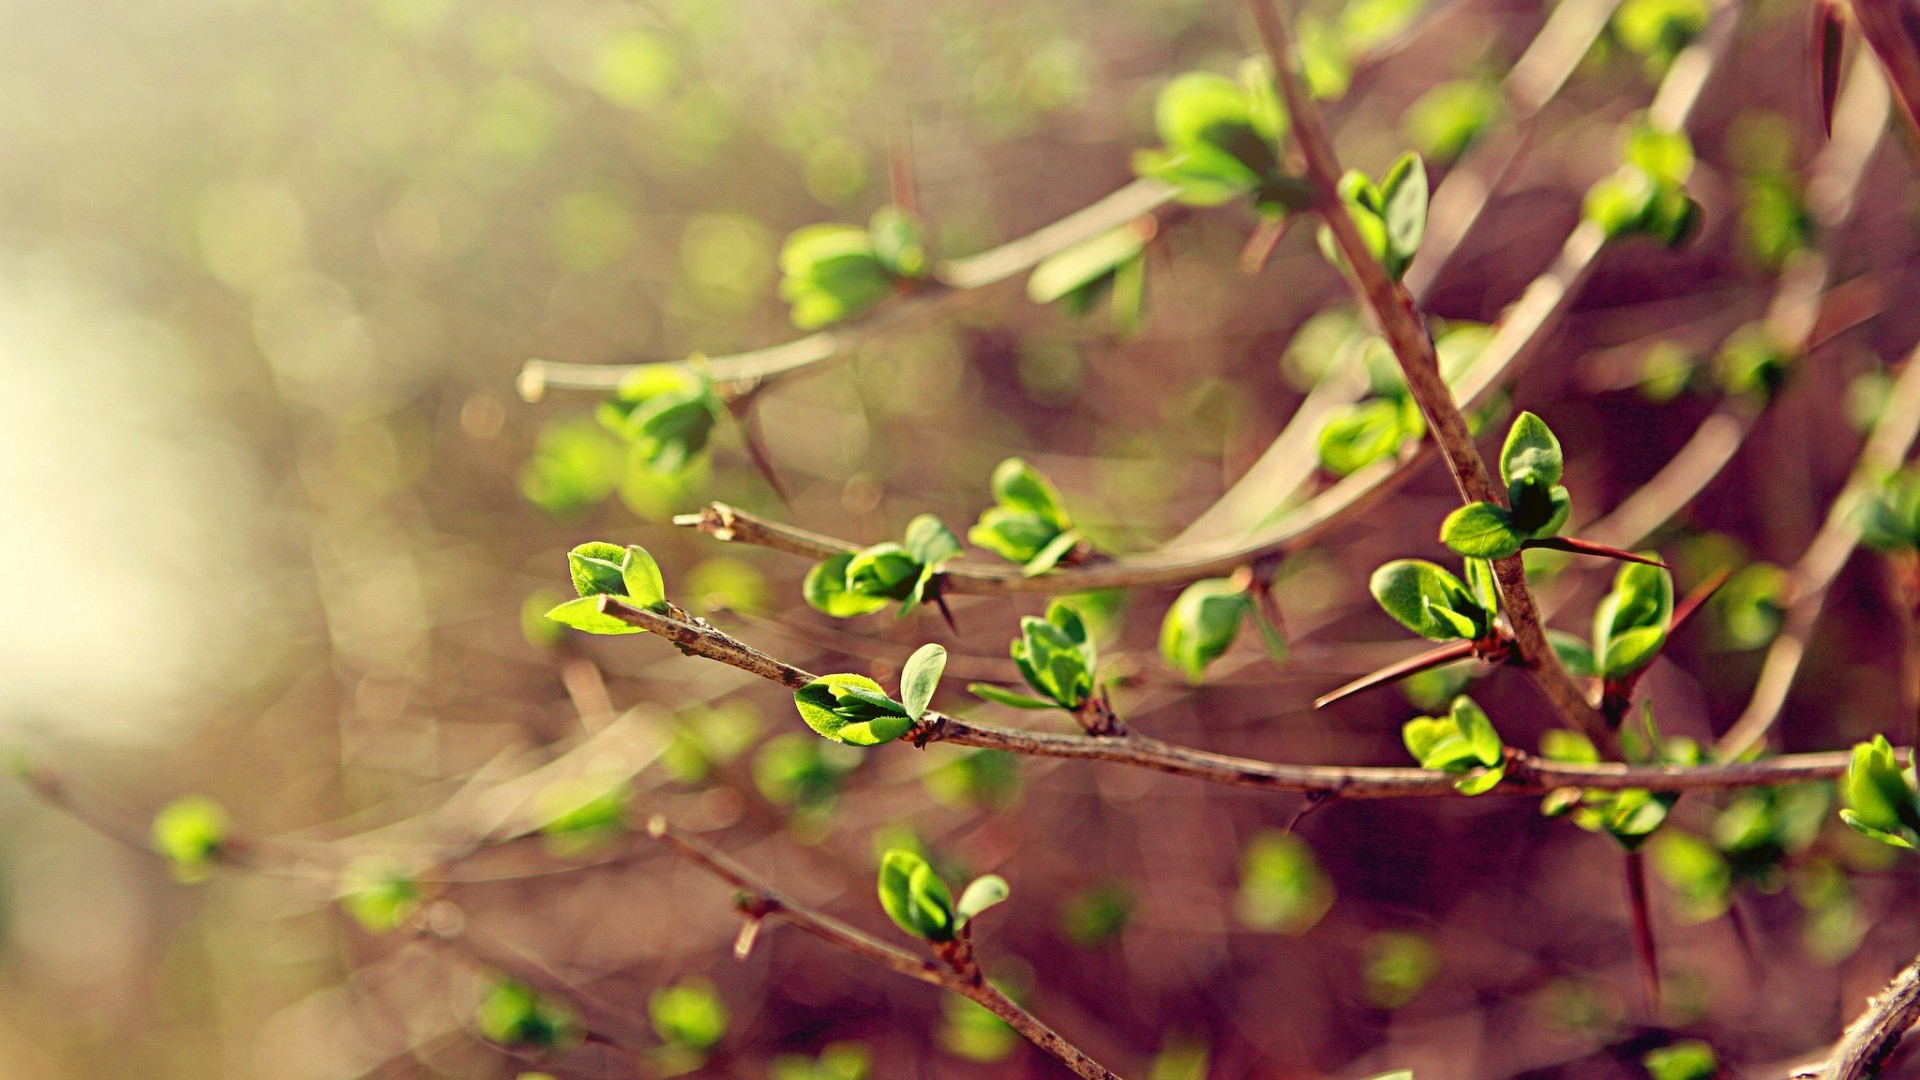 Beautiful-green-branches-tree-in-blossom-spring-season_1920x1080